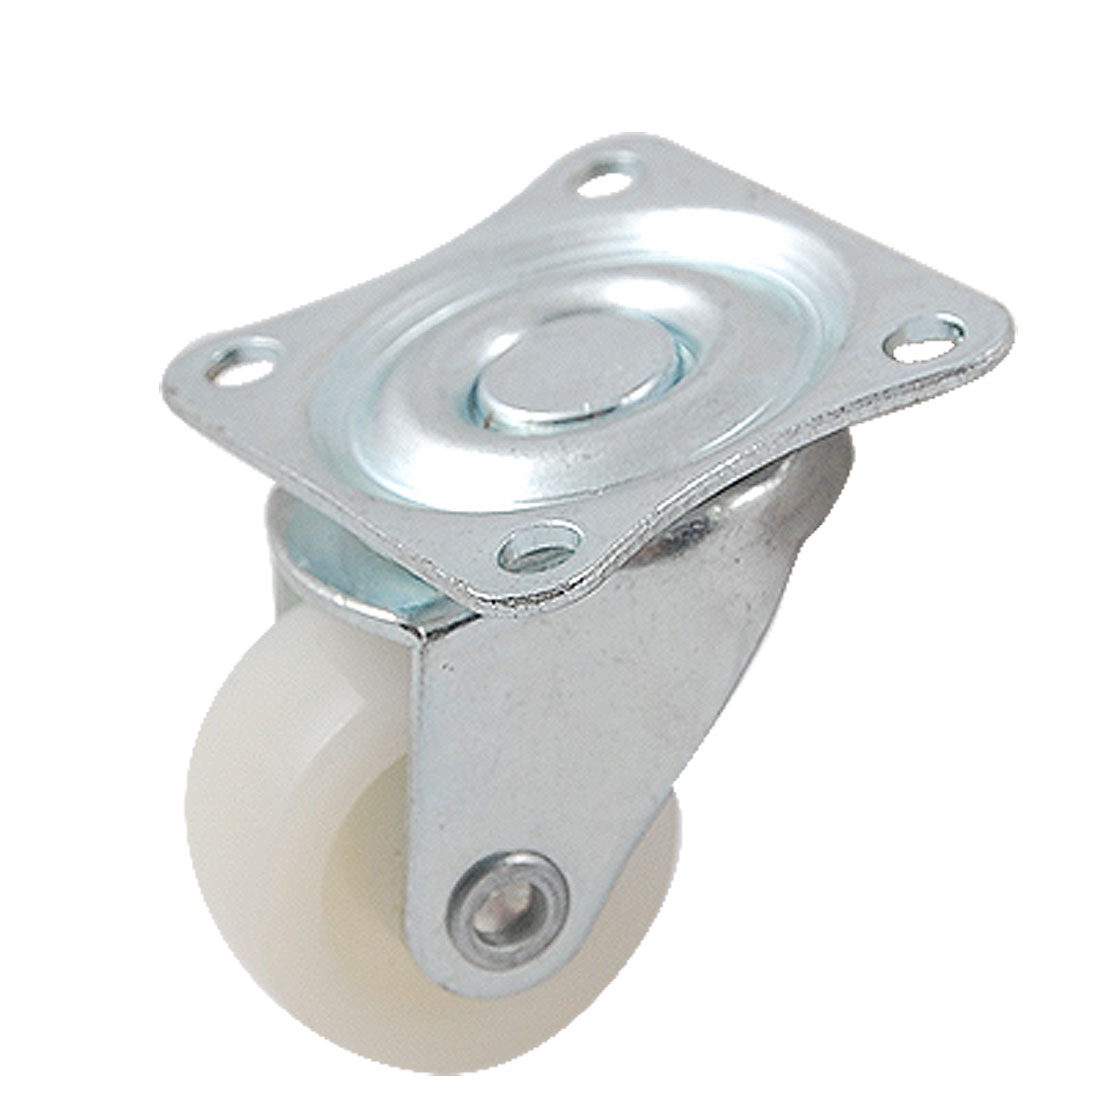 2 Pcs 25mm Dia Light Duty Ball Bearing Swivel Flat Plate Industrial Caster